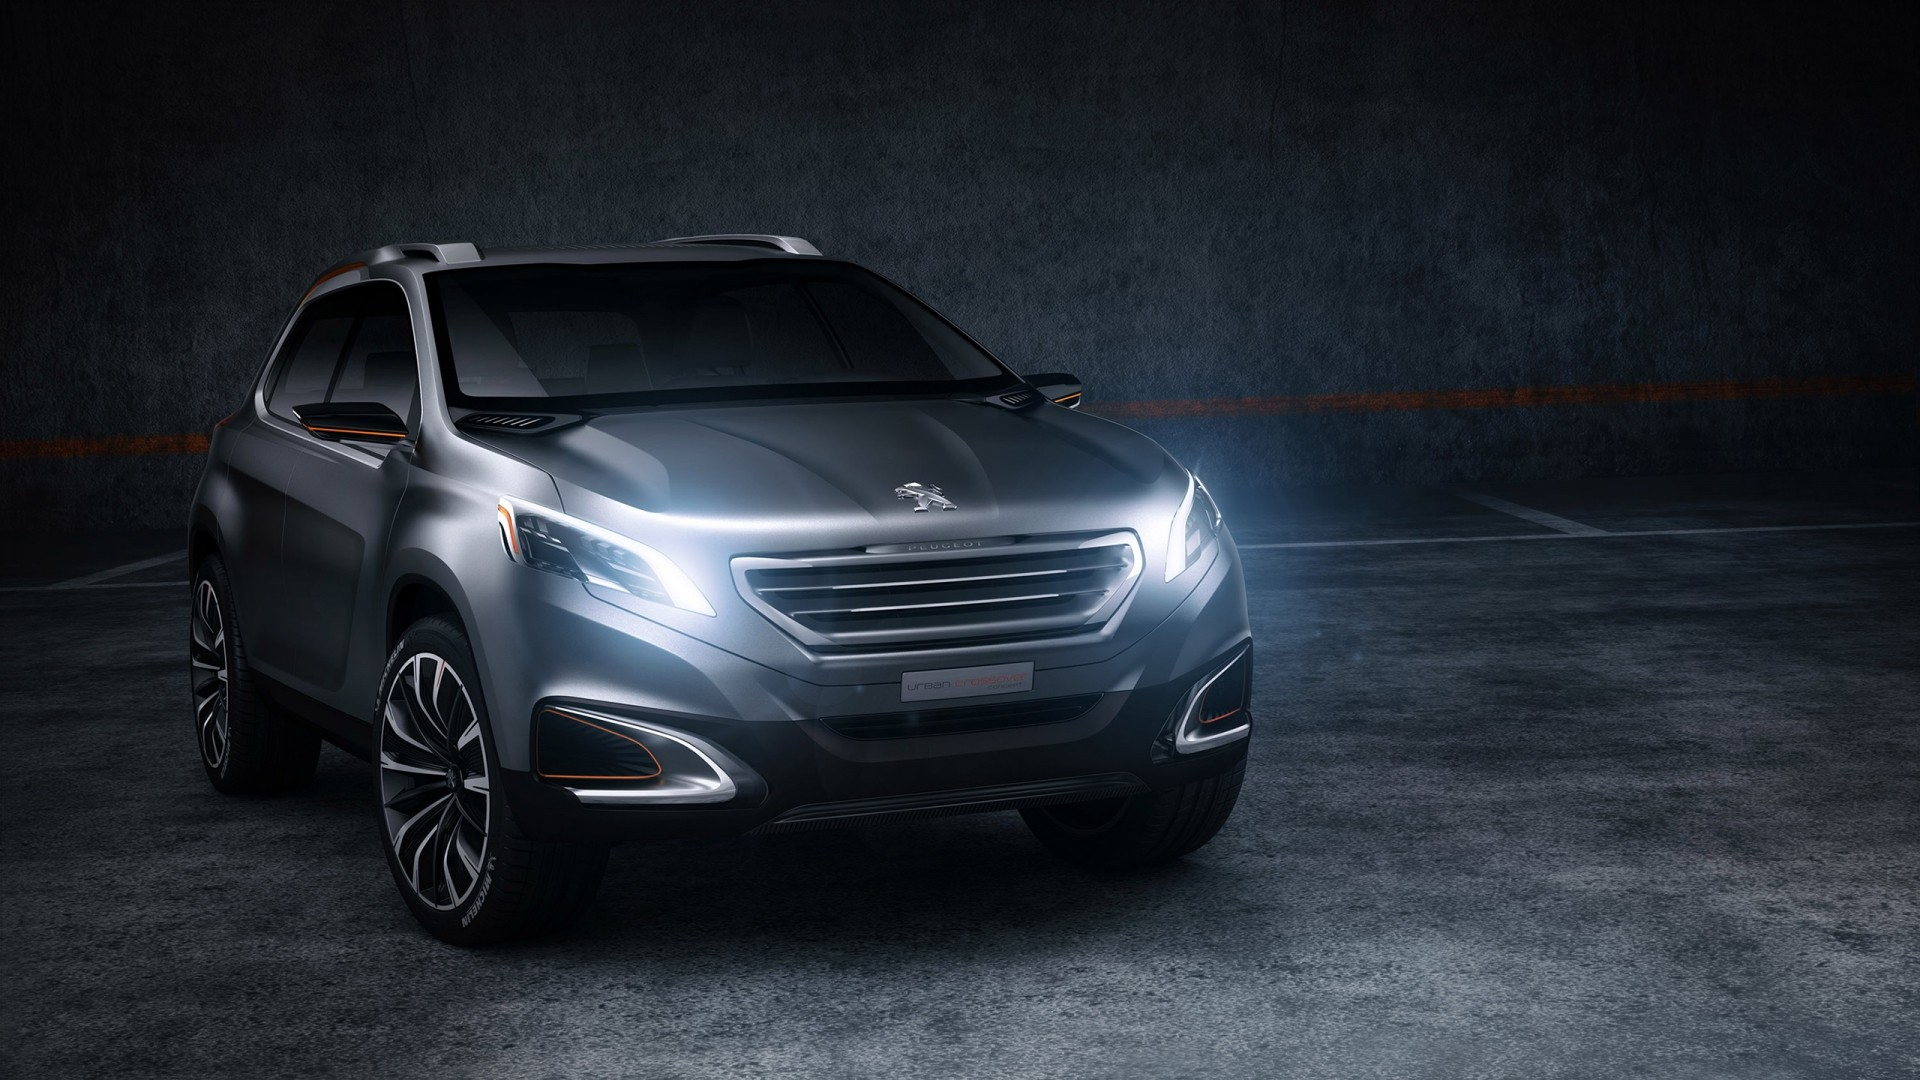 Peugeot Urban, Crossover Concept